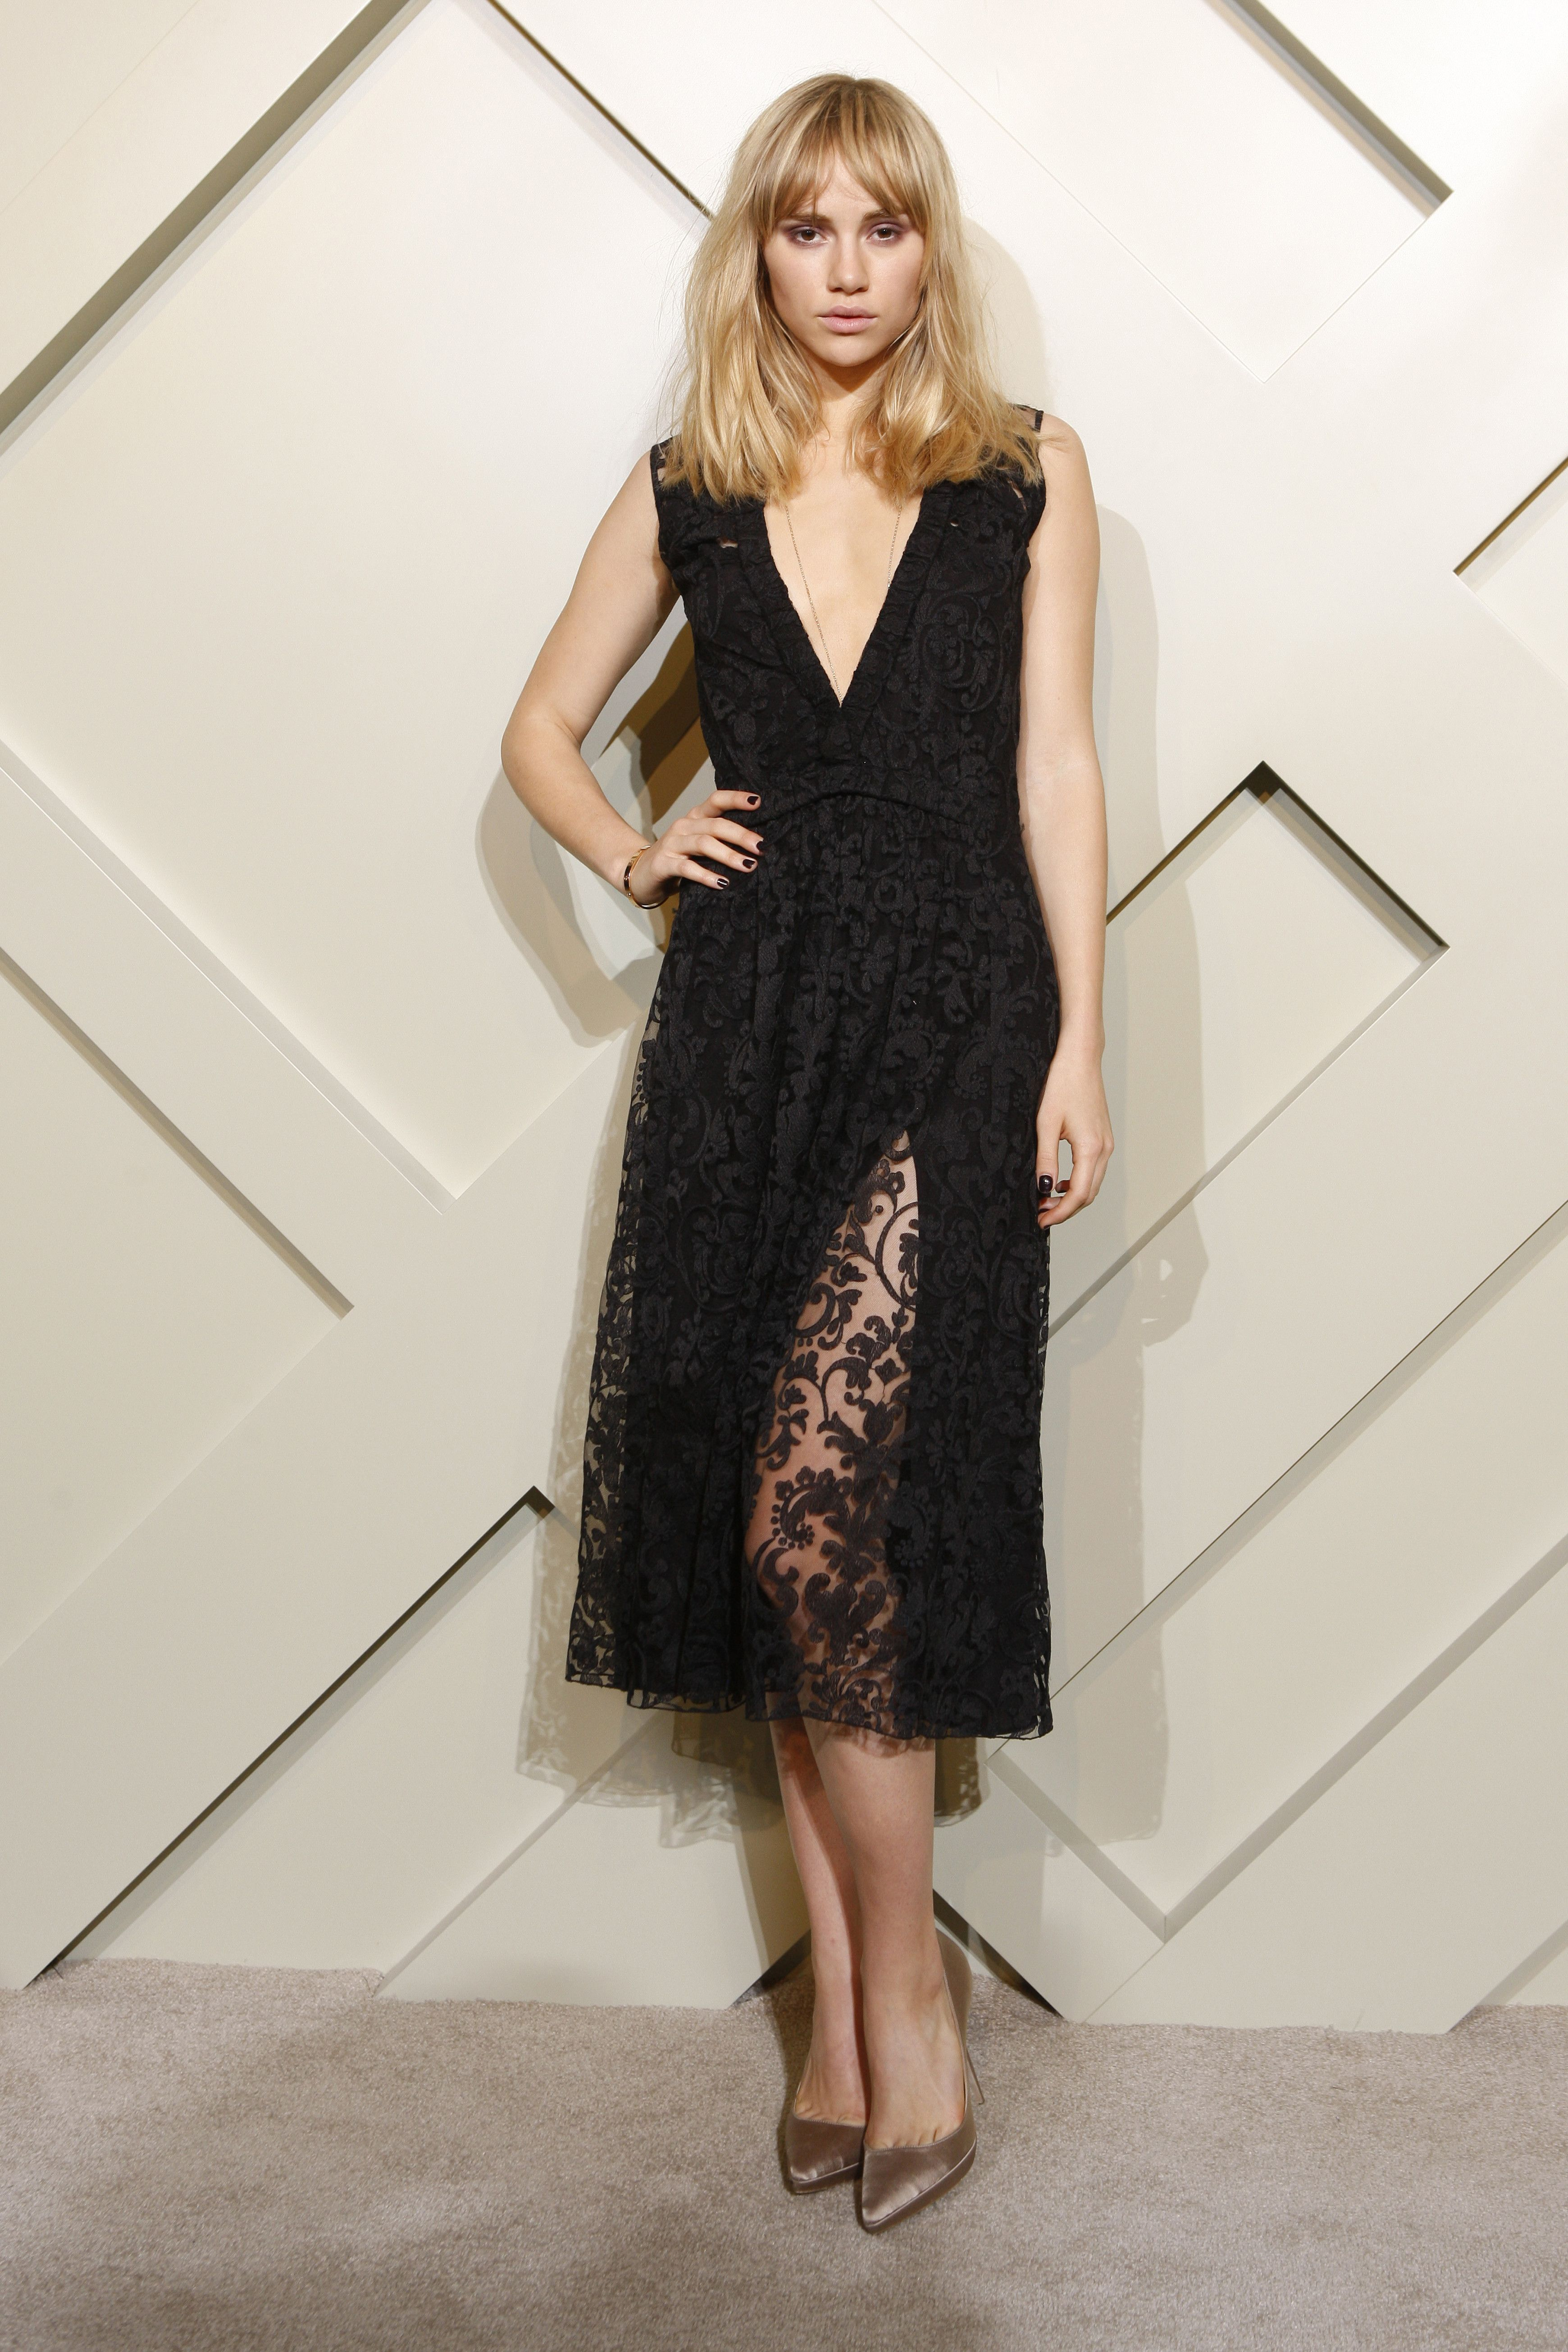 Suki Waterhouse in Burberry Prorsum #LBD